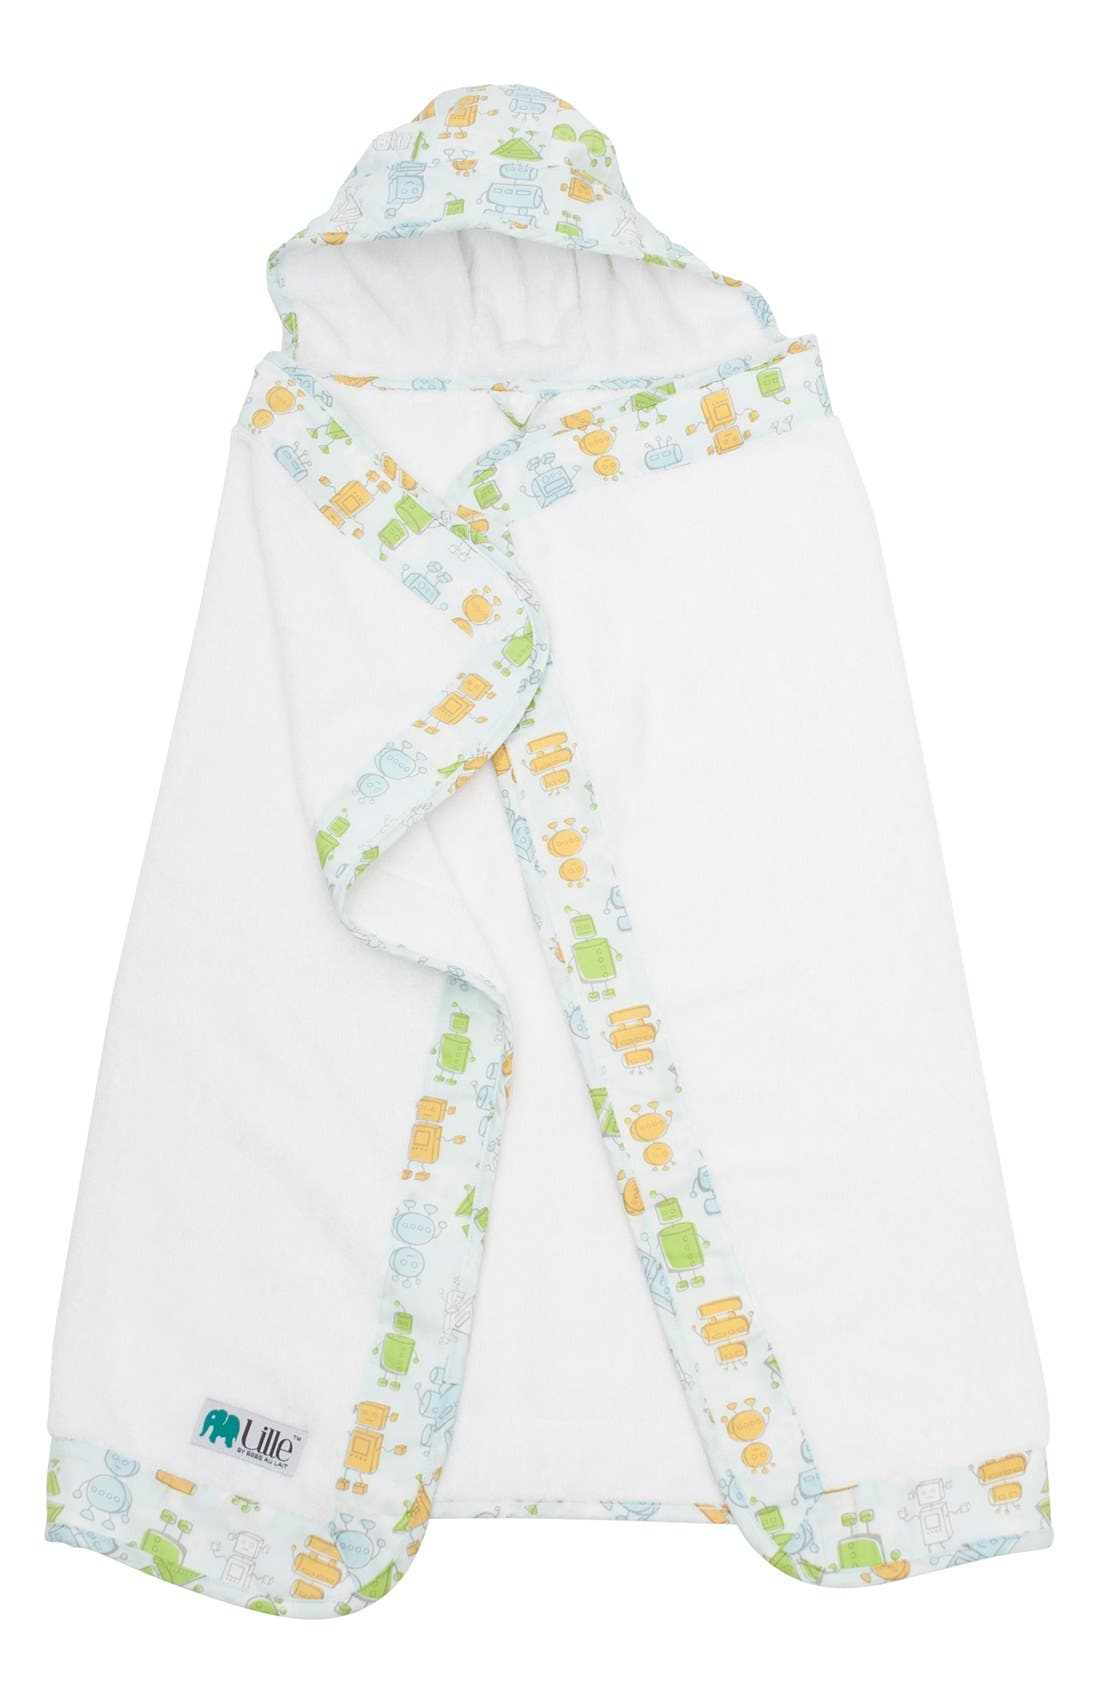 BÉBÉ AU LAIT 'Lille' Hooded Terry Towel